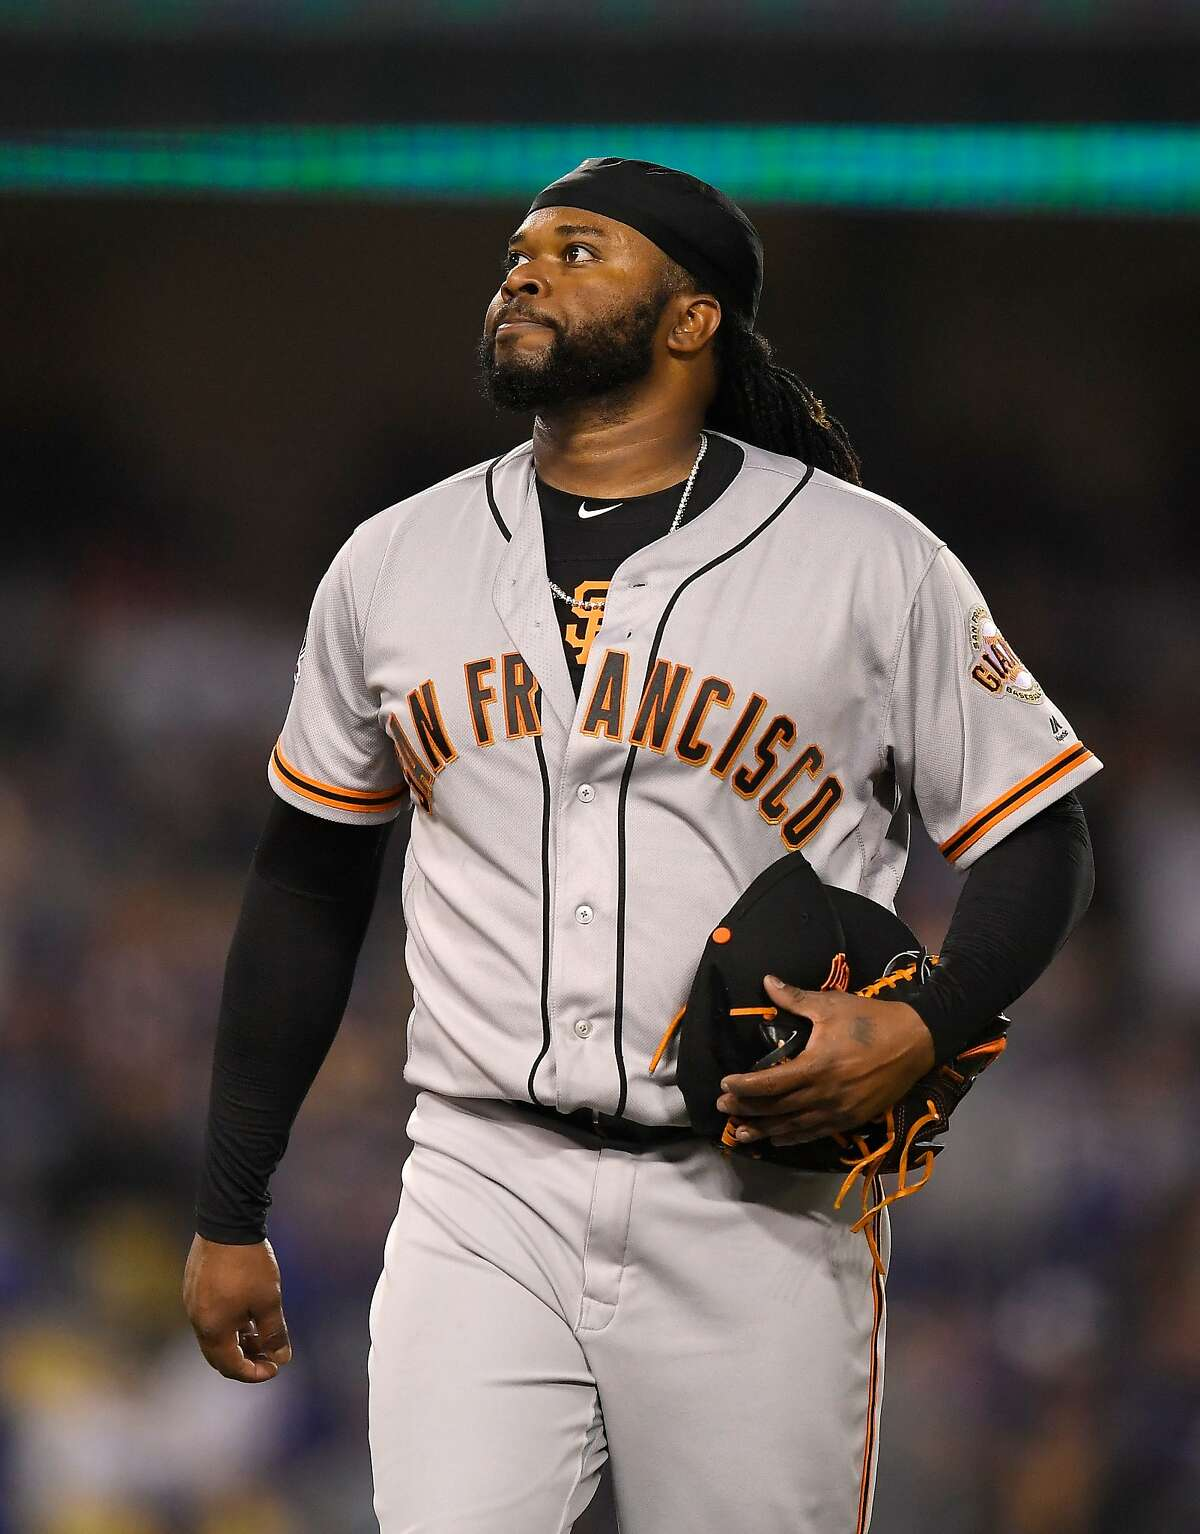 San Francisco Giants starting pitcher Johnny Cueto walks off the field after completing the seventh inning of a baseball game against the Los Angeles Dodgers Friday, March 30, 2018, in Los Angeles. Cueto had a no-hitter going into the seventh inning until Los Angeles Dodgers' Chris Taylor hit a single, breaking it up.